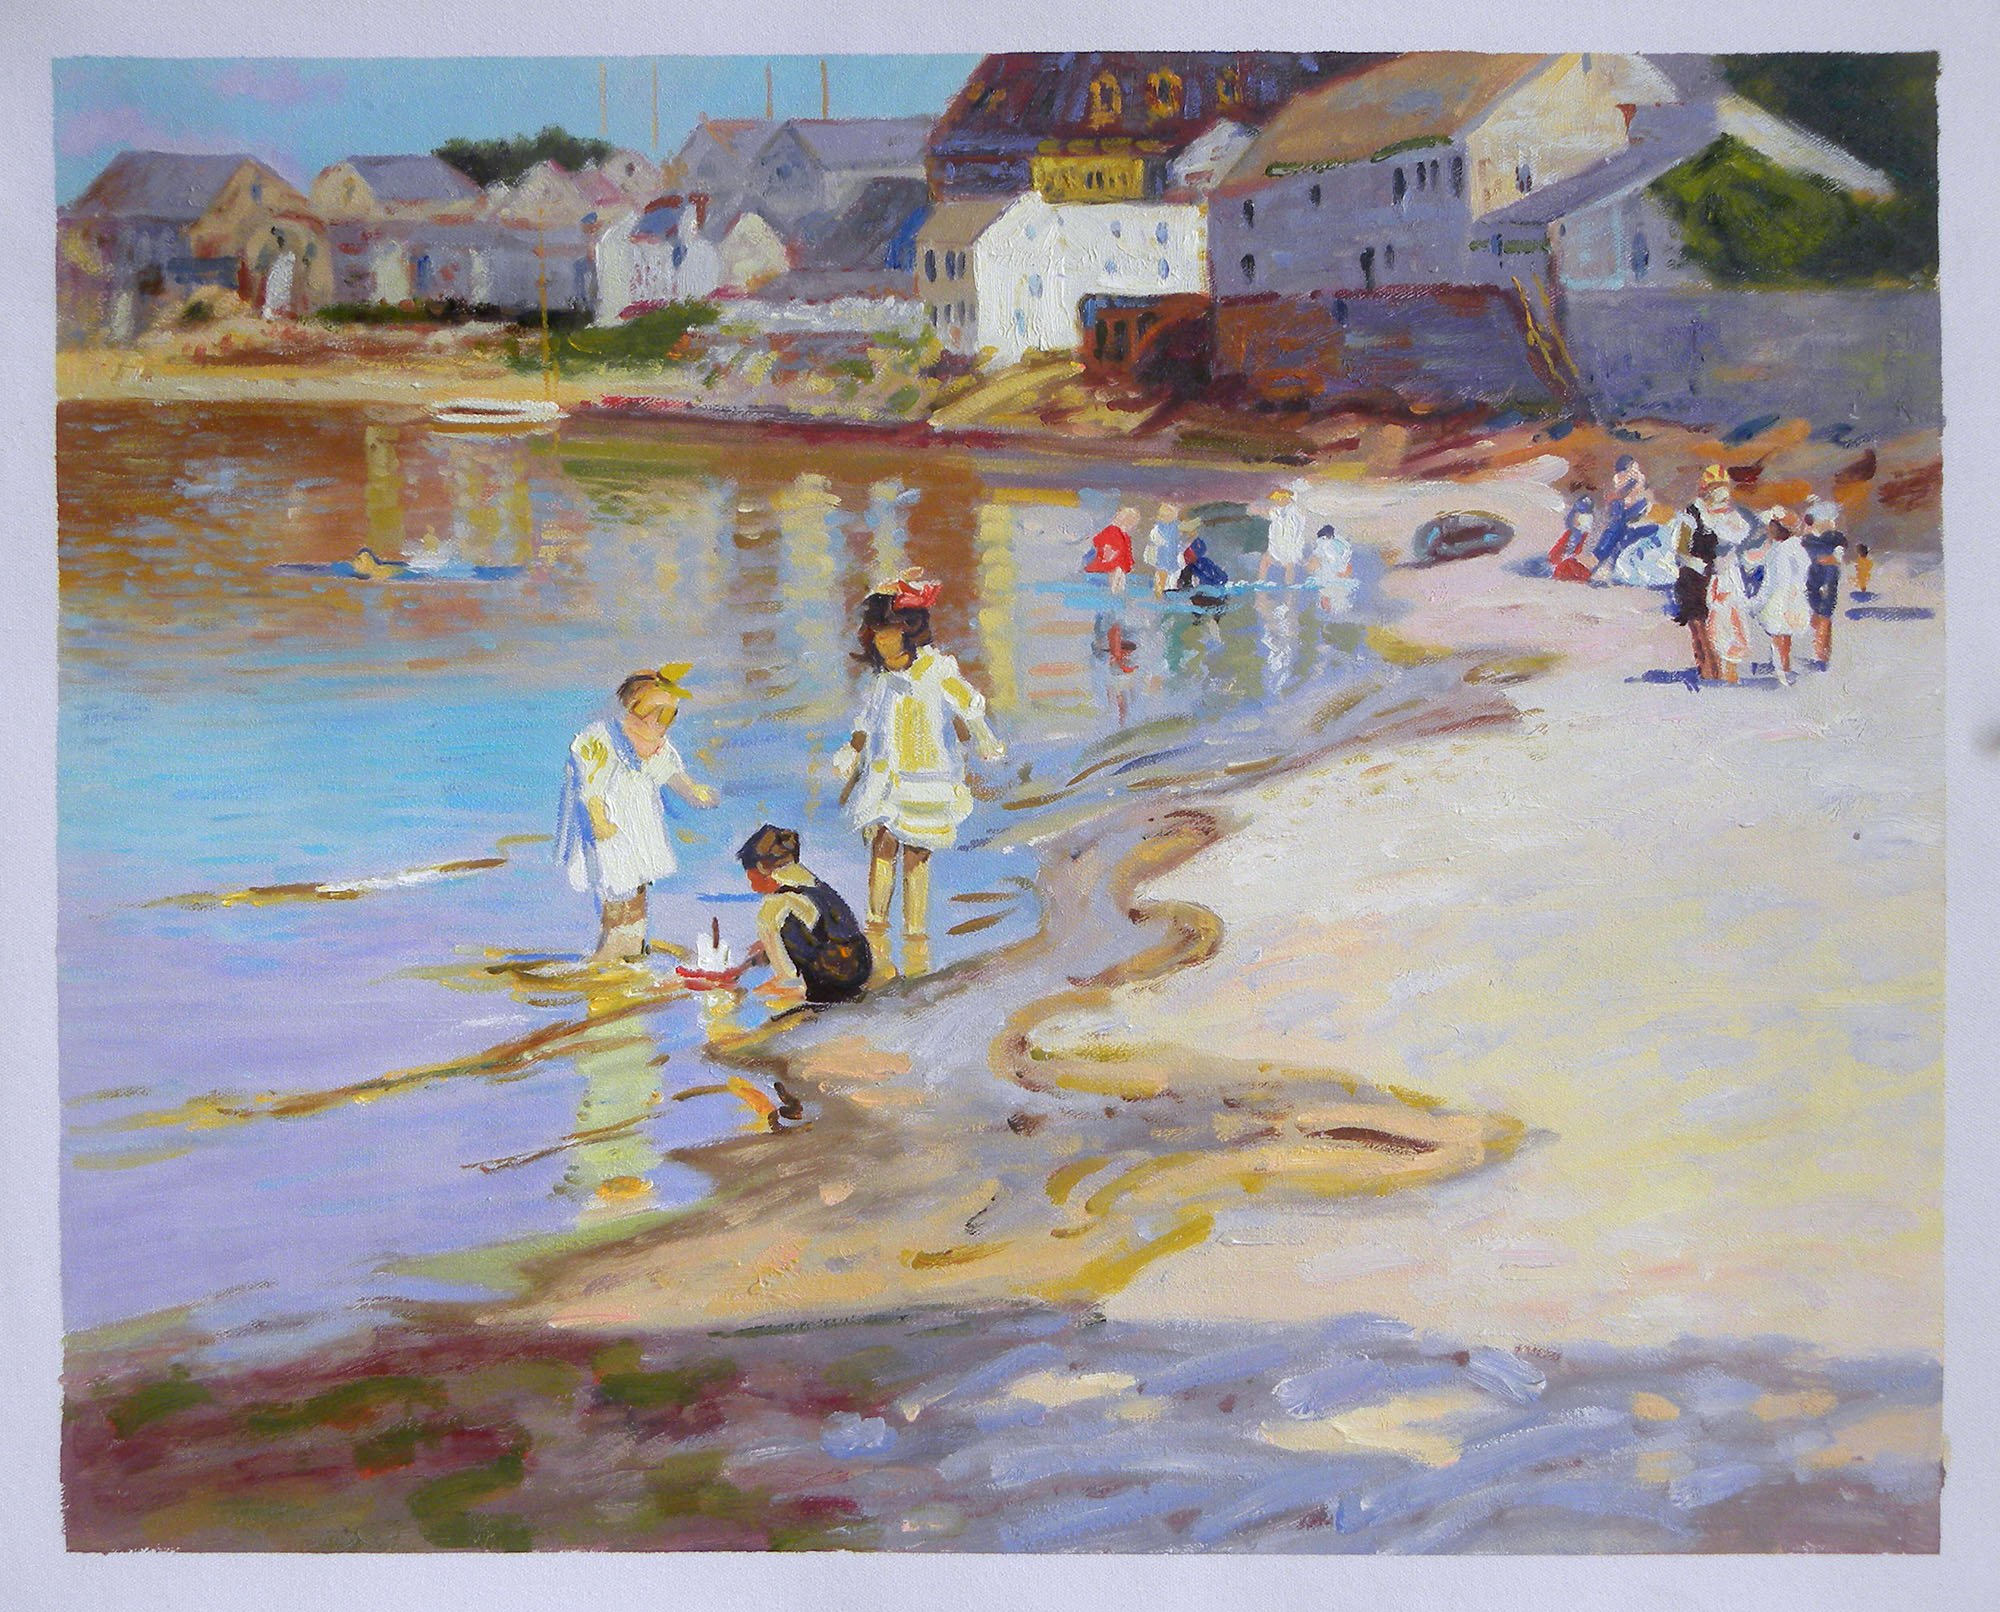 At the Beach - Edward Potthast hand-painted oil painting reproduction,Children Playing on Riverbank,living room impressionist wall art decor (20 x 25.5 in.) by Edward Henry Potthast (Image #1)